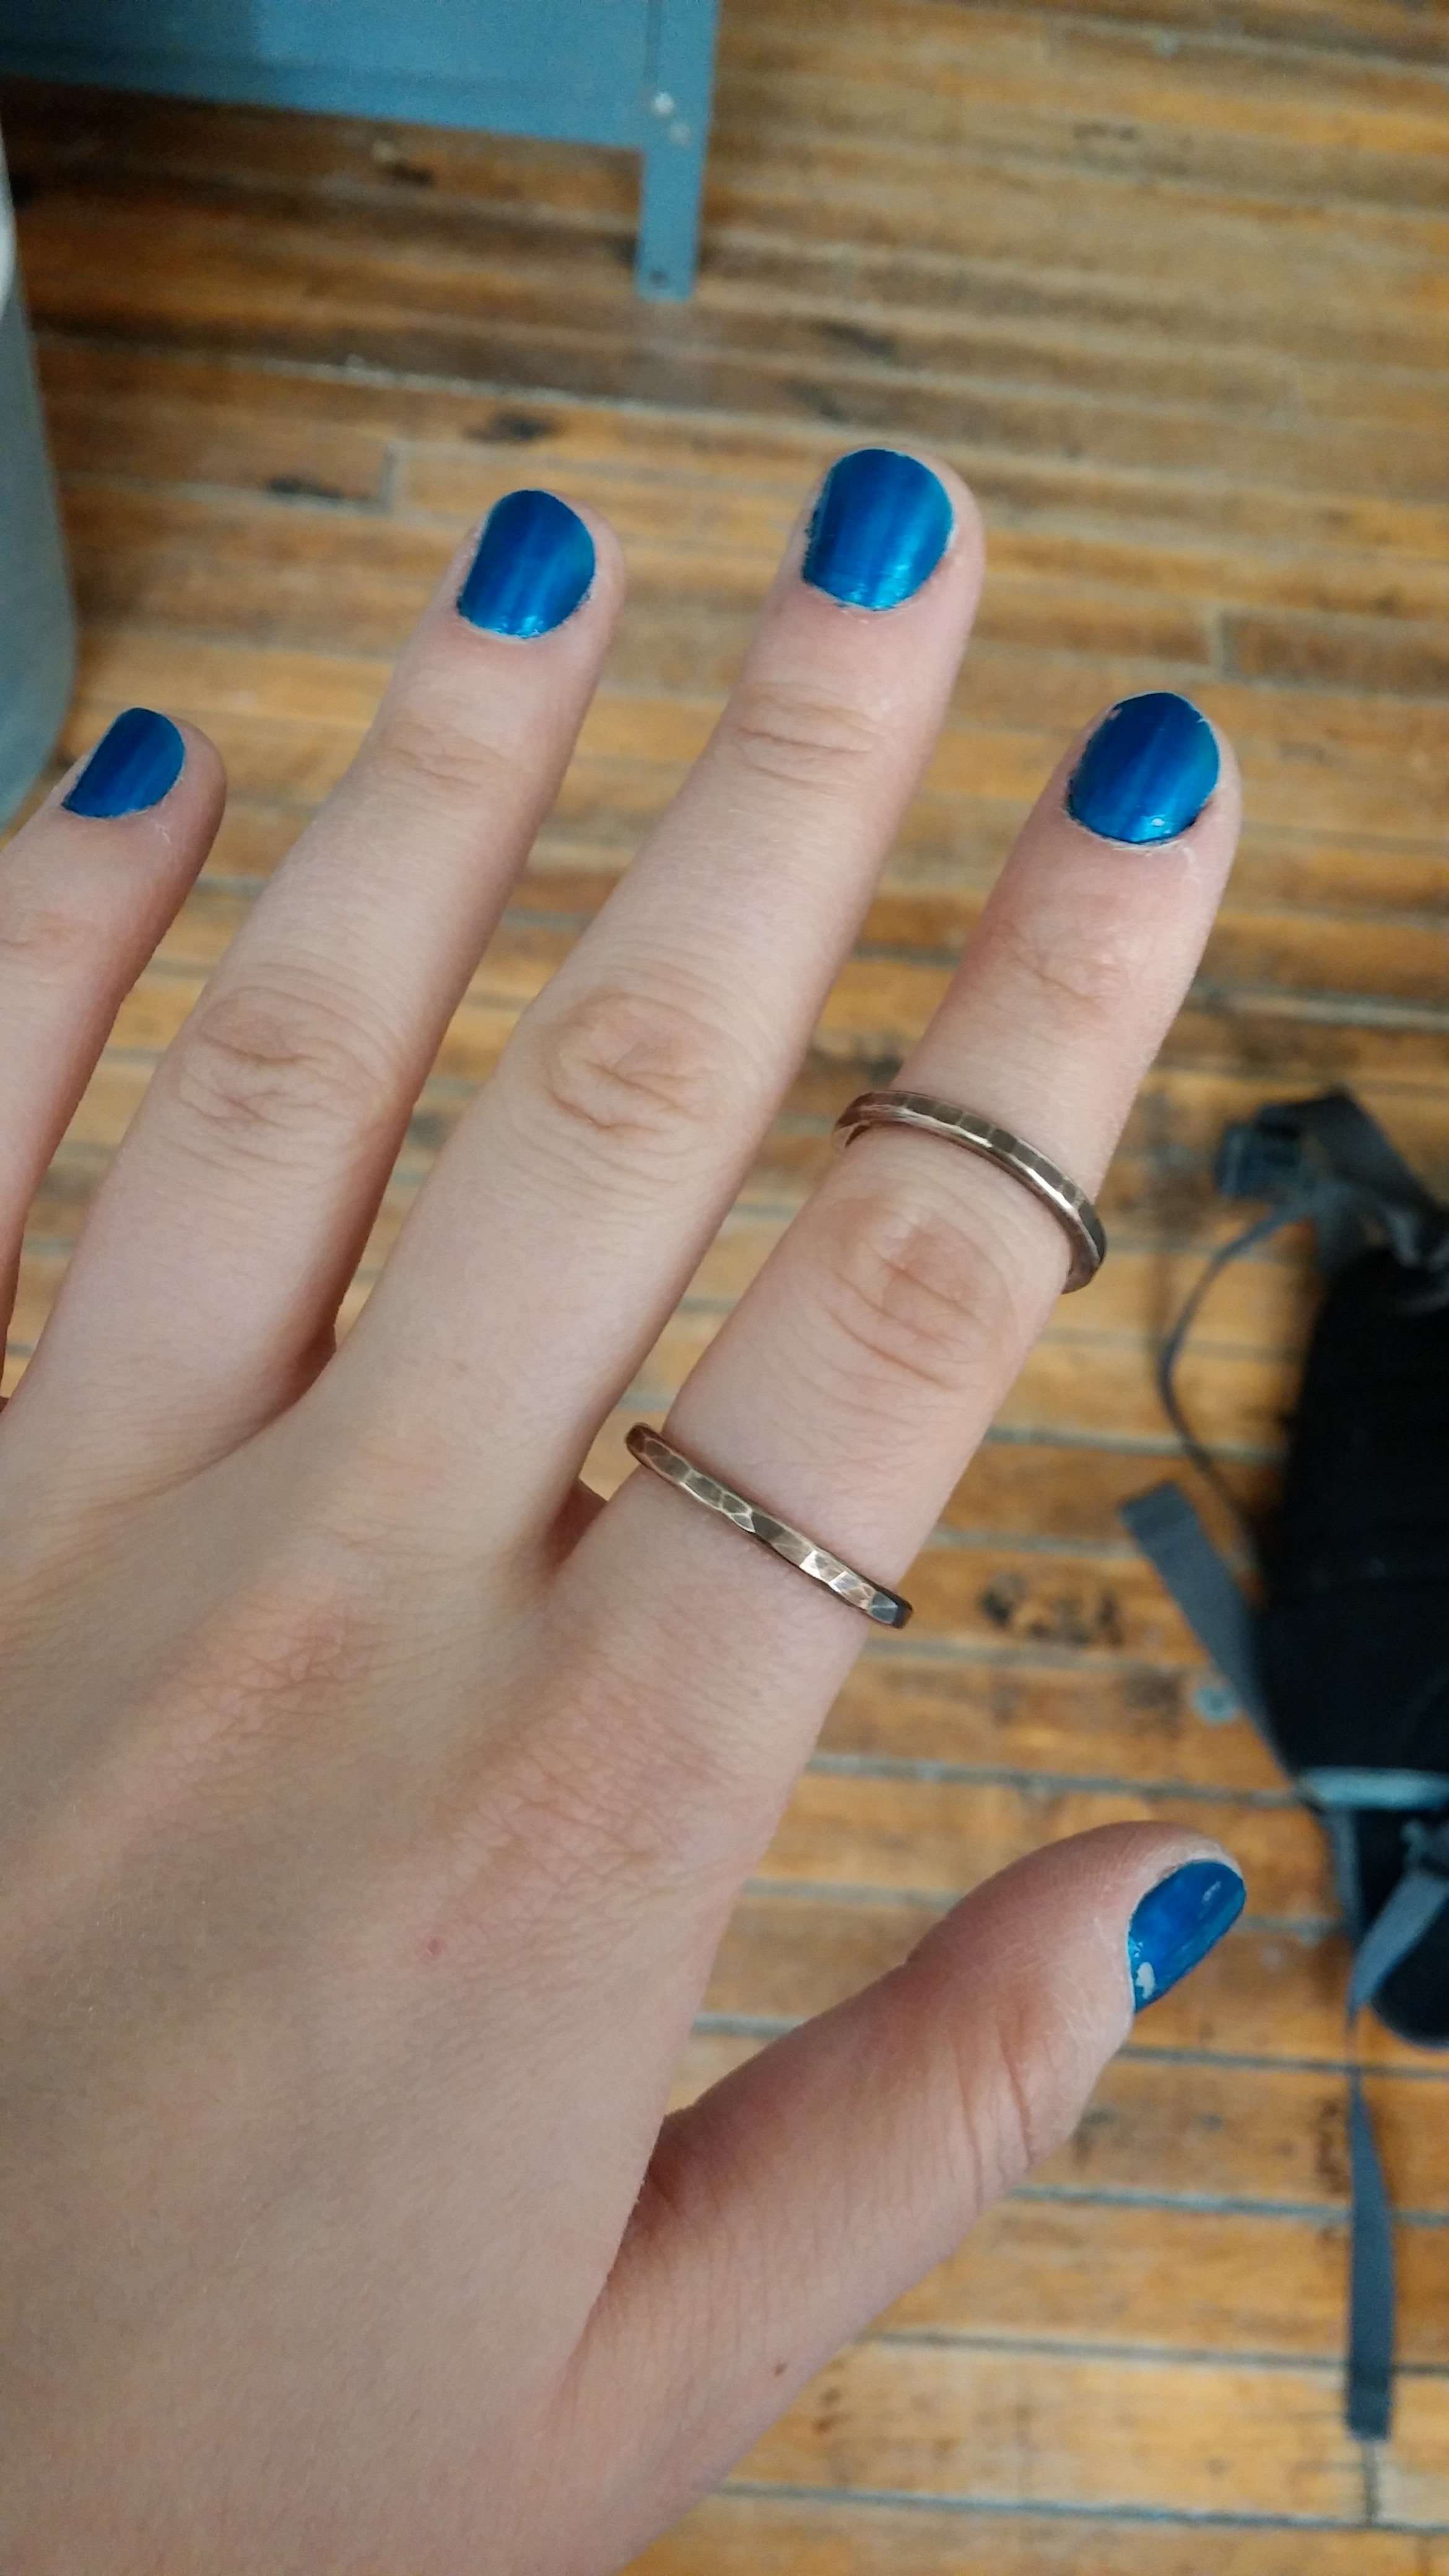 Finished two custom ring orders